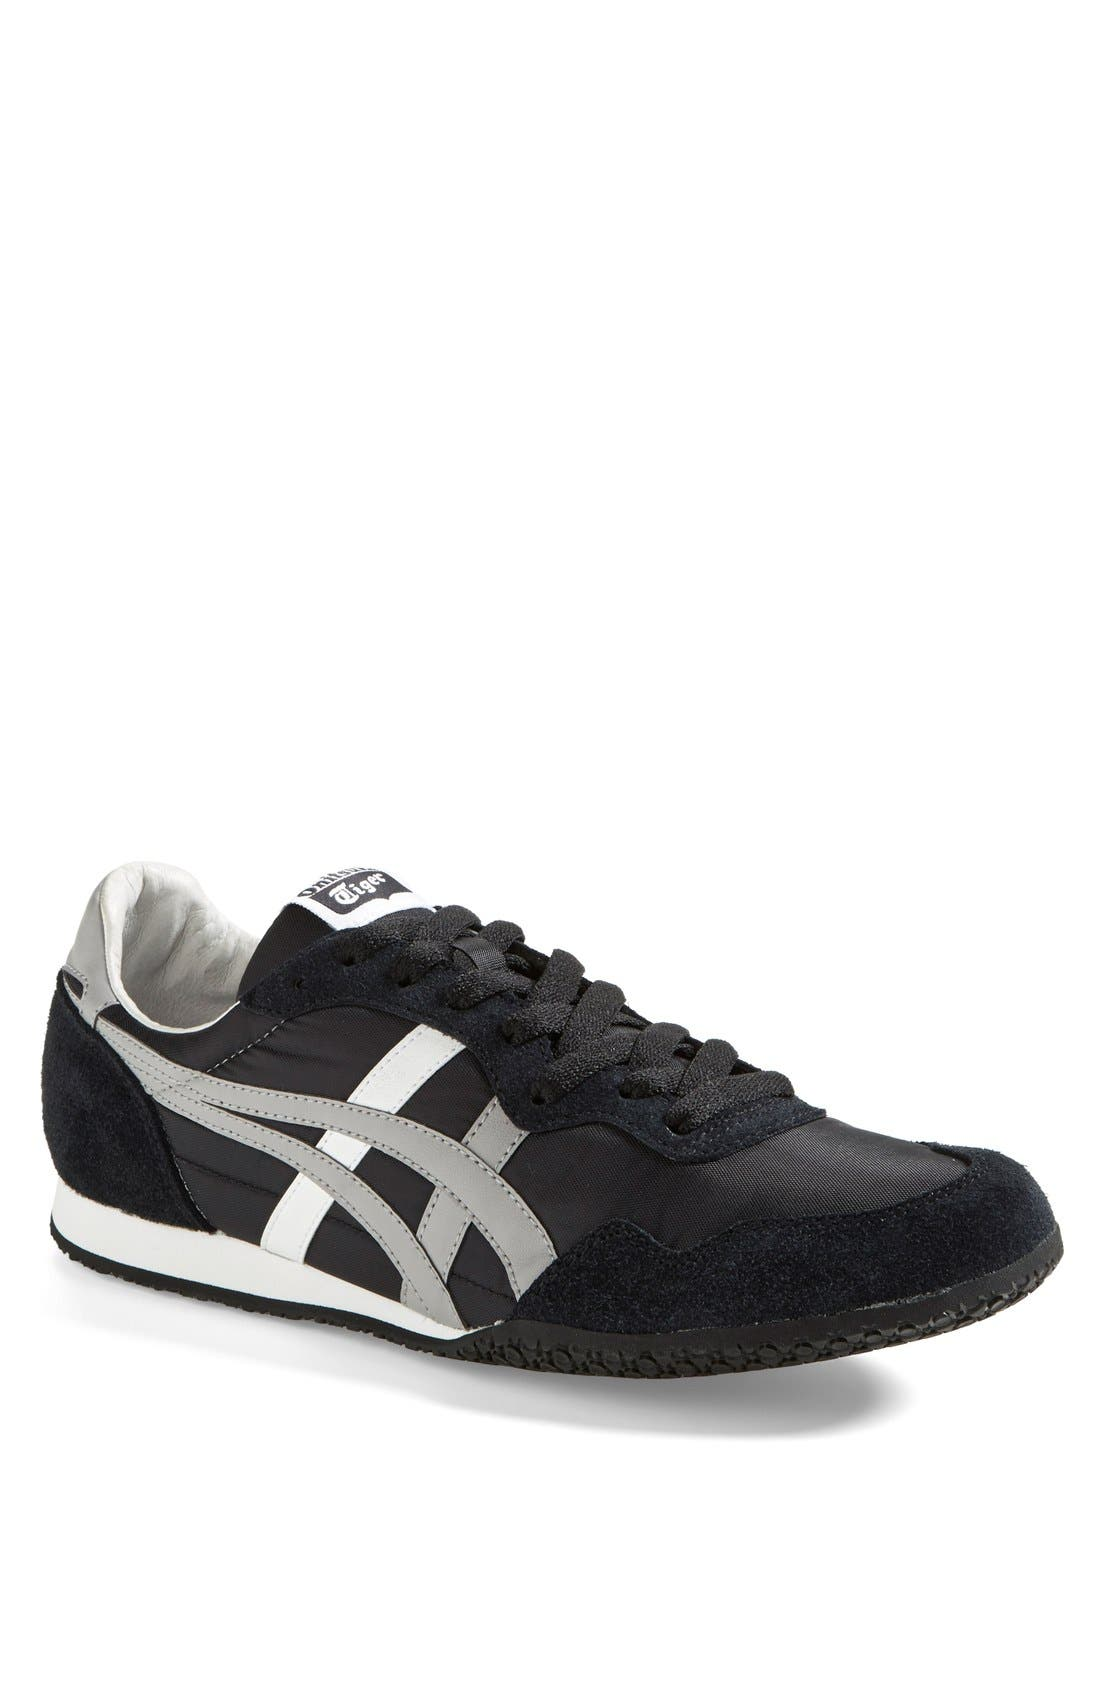 onitsuka tiger street fighter india logo 7021g